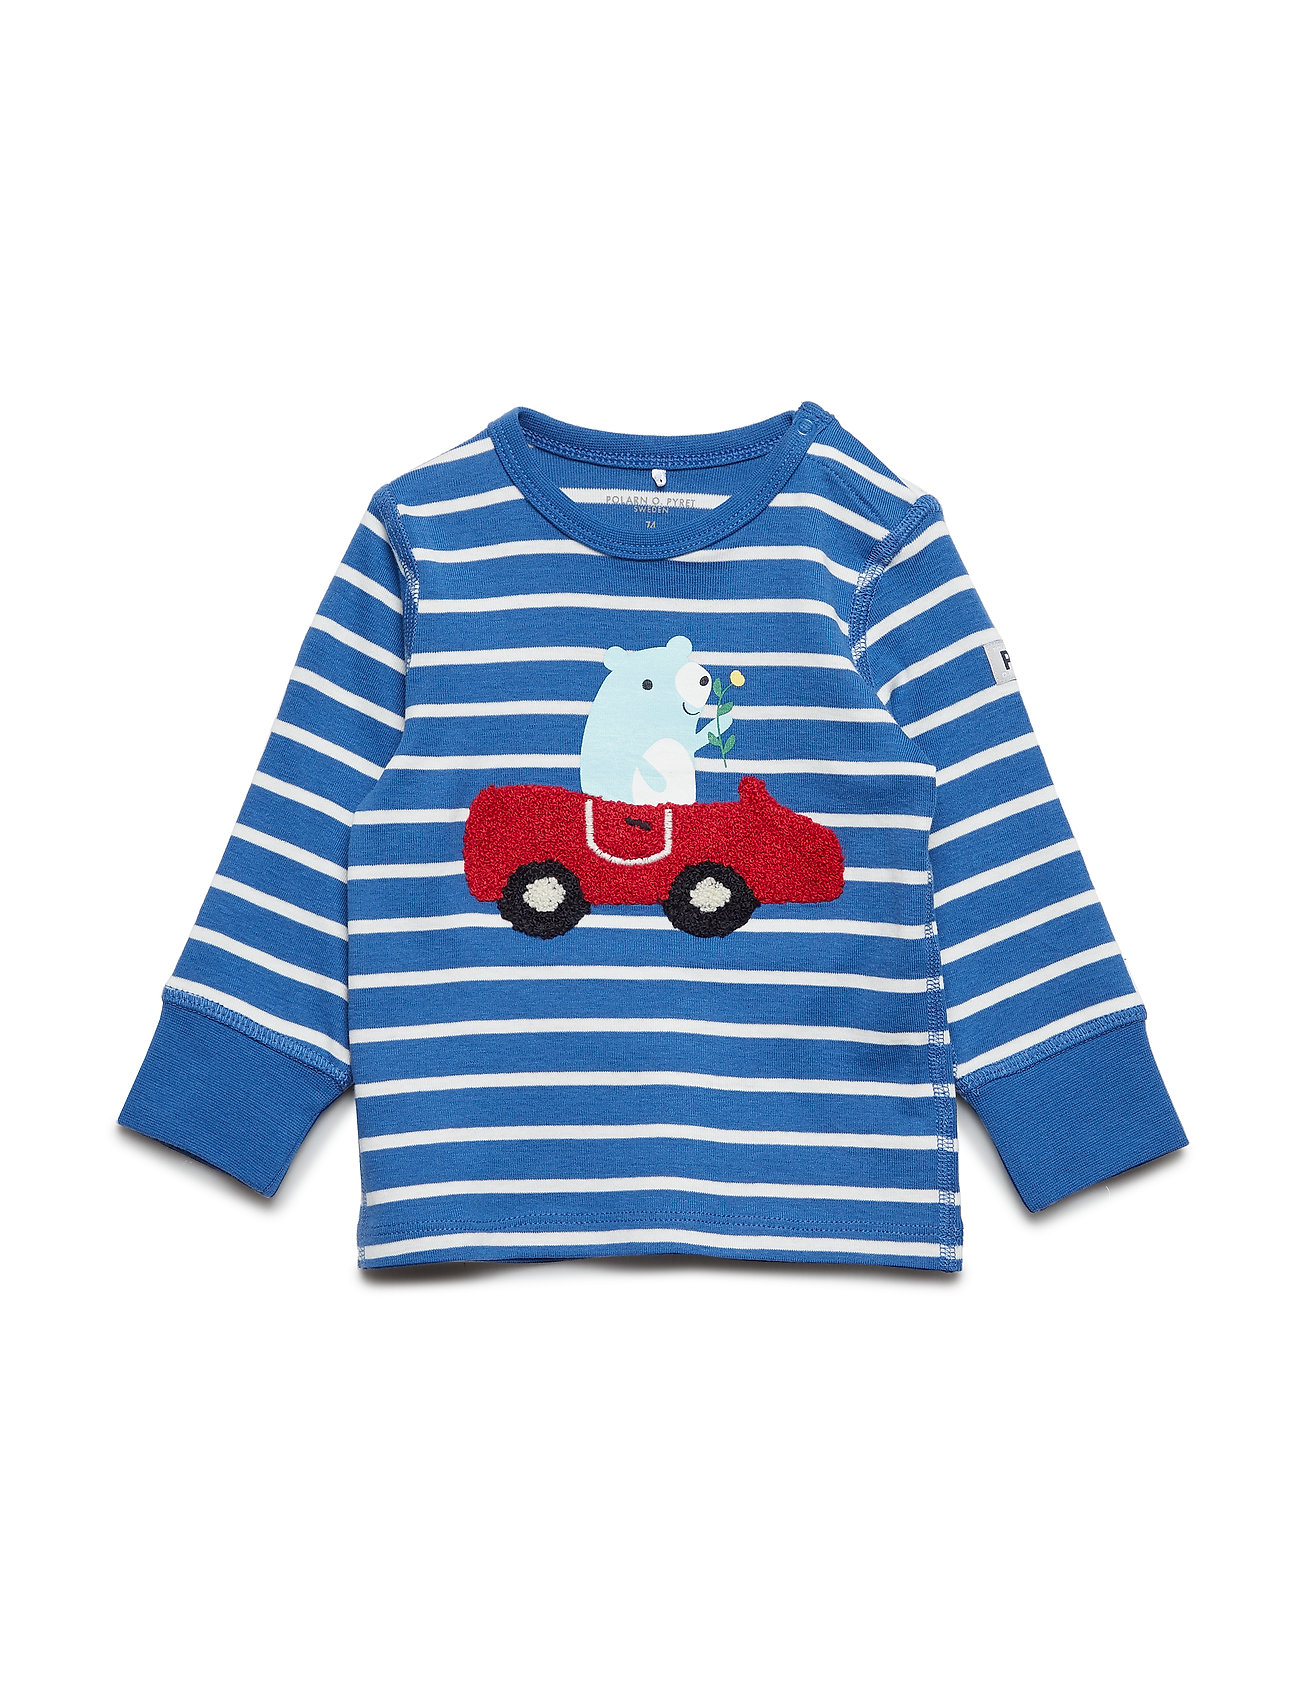 Polarn O. Pyret T-shirt Long Sleeve PO.P Stripe Baby